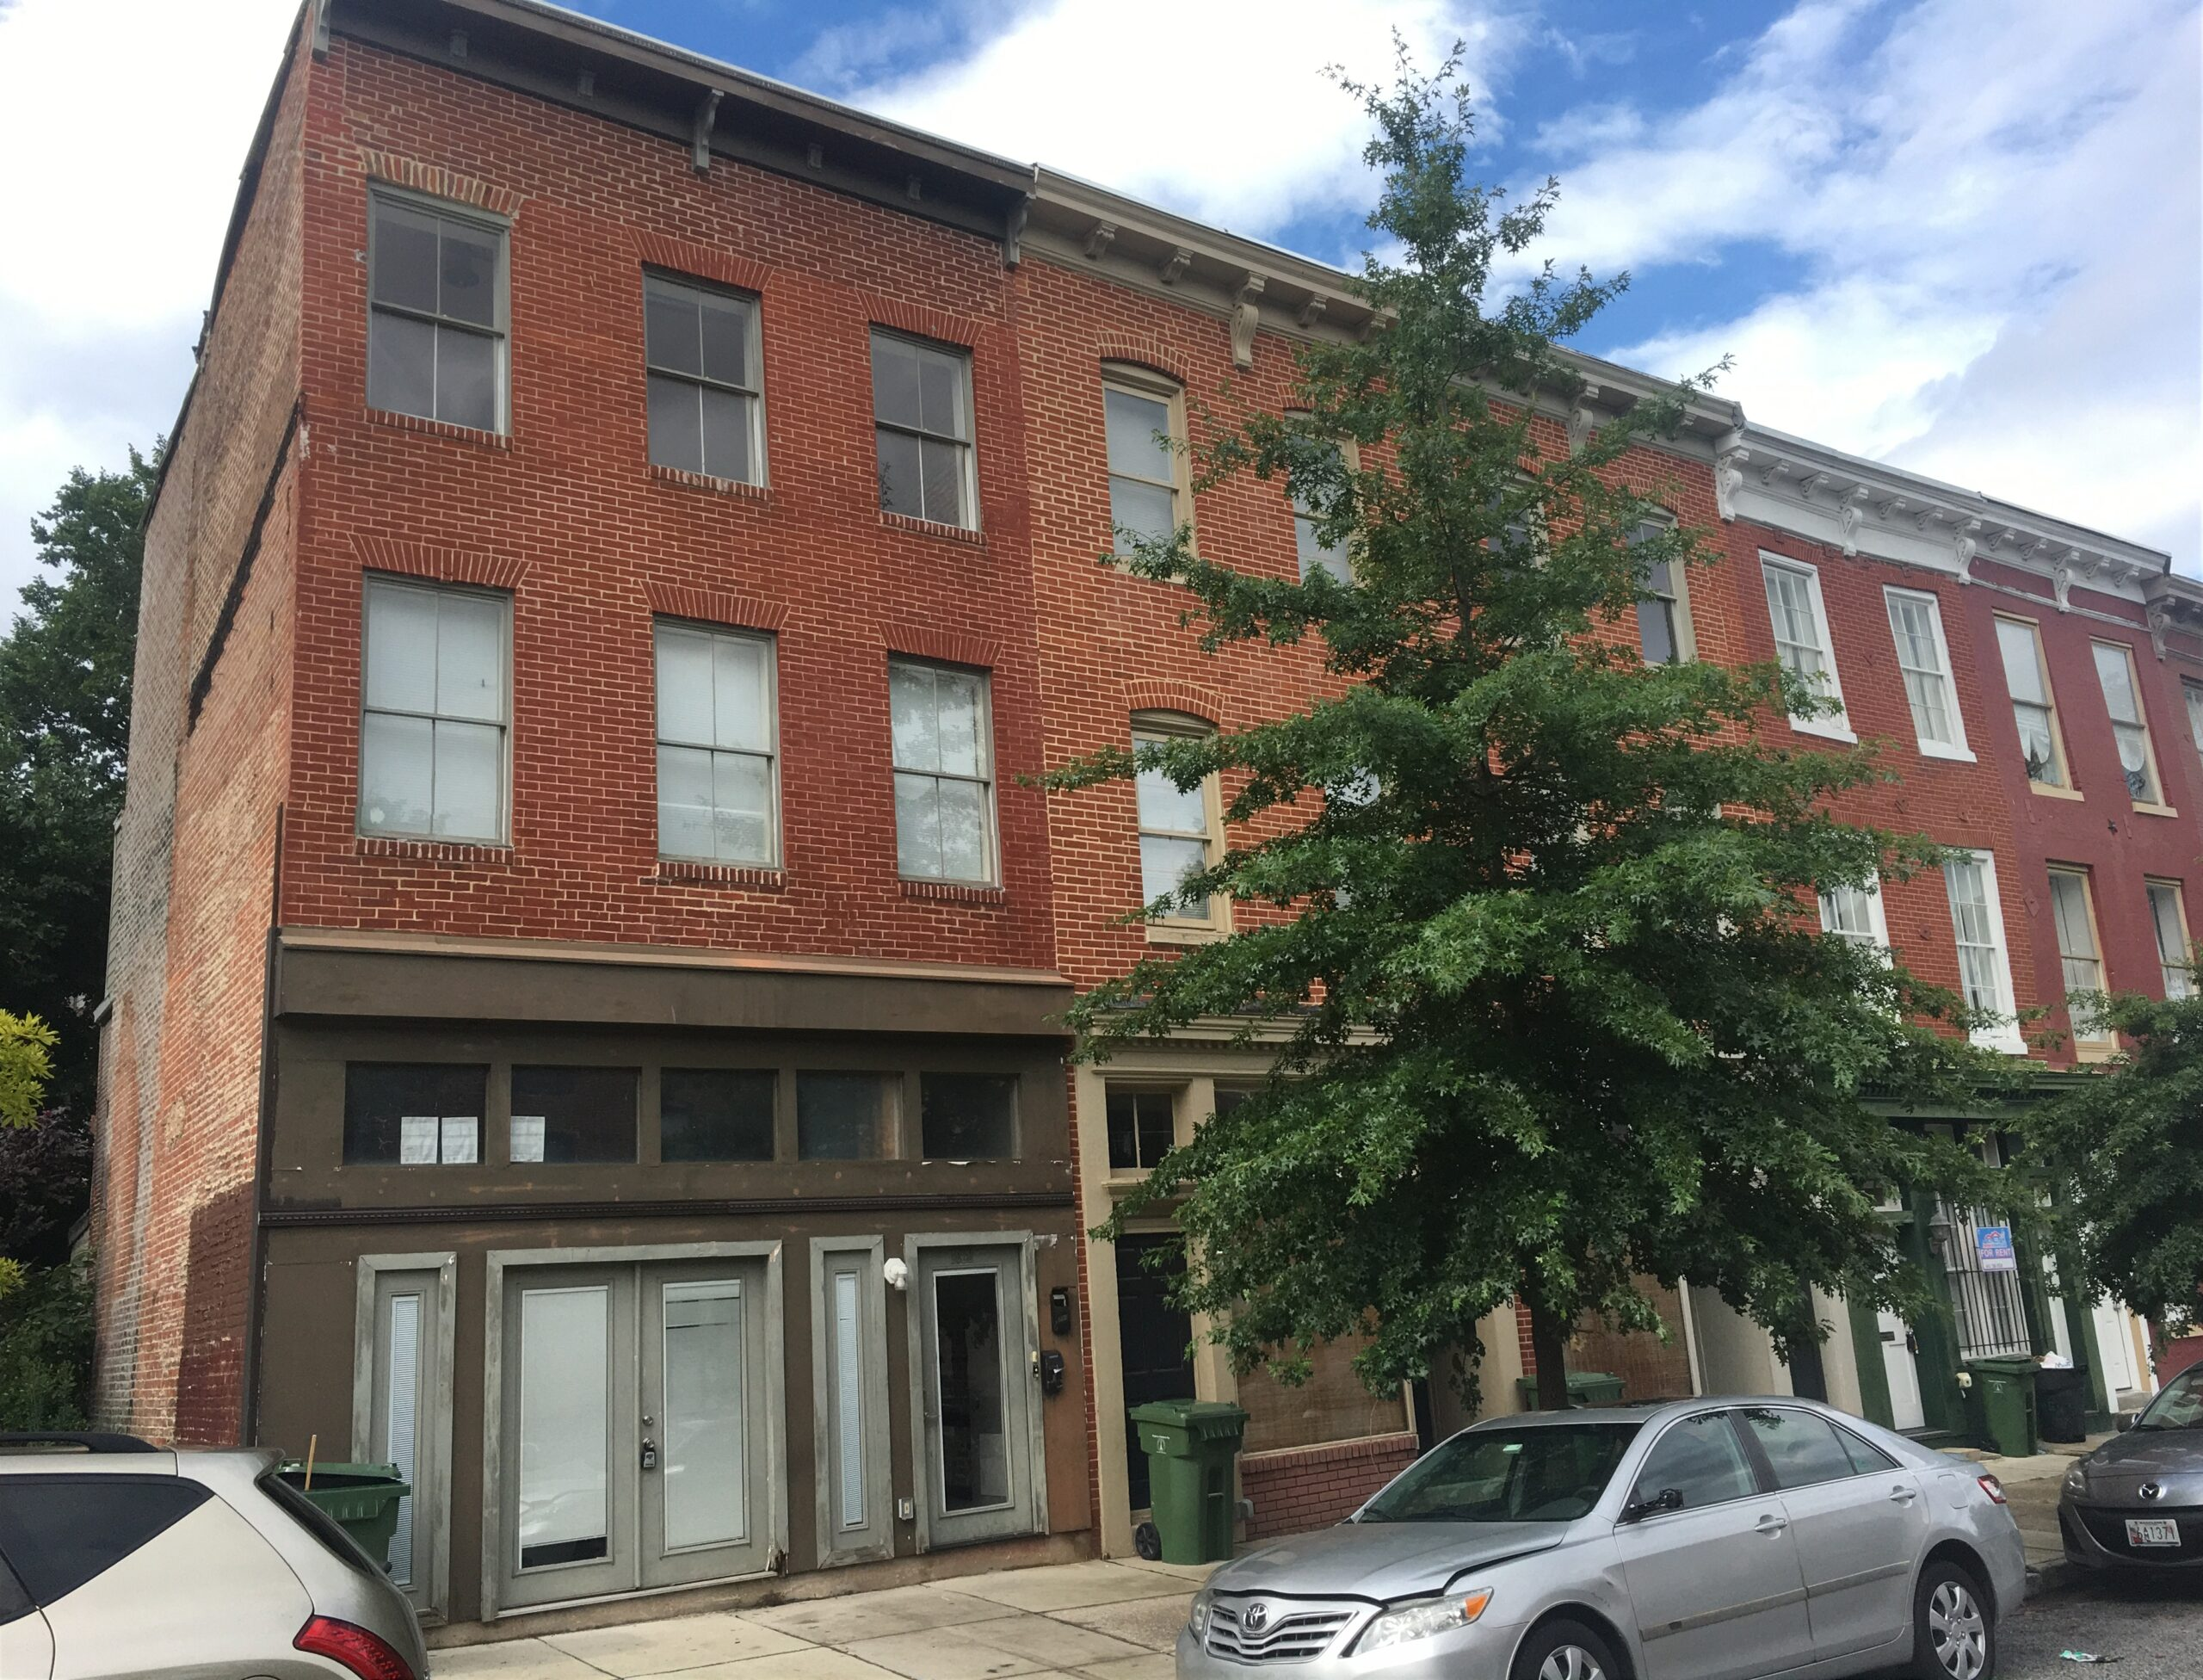 1030 Hollins Street 2 Apartments 1 Retail Space Hollins Market District Value Add  Opportunity!